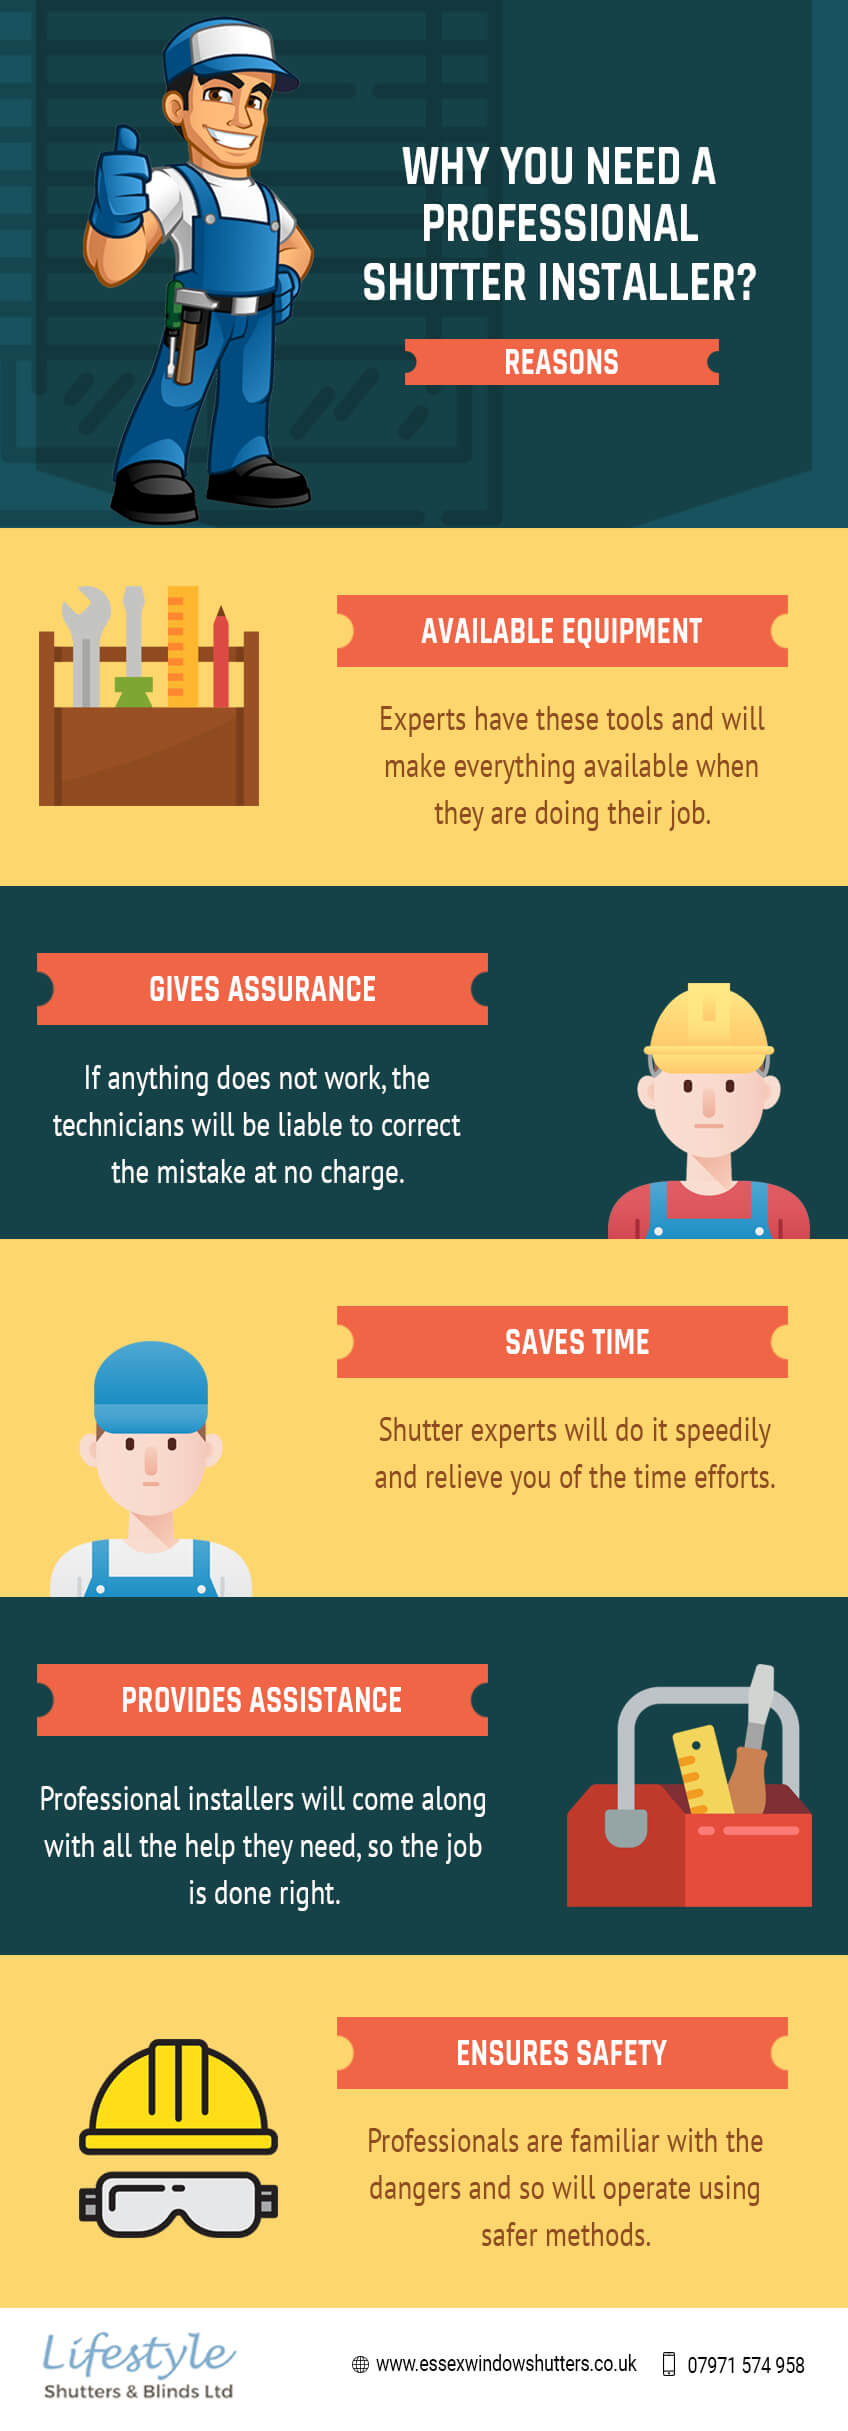 Why-You-Need-a-Professional-Shutter-Installer